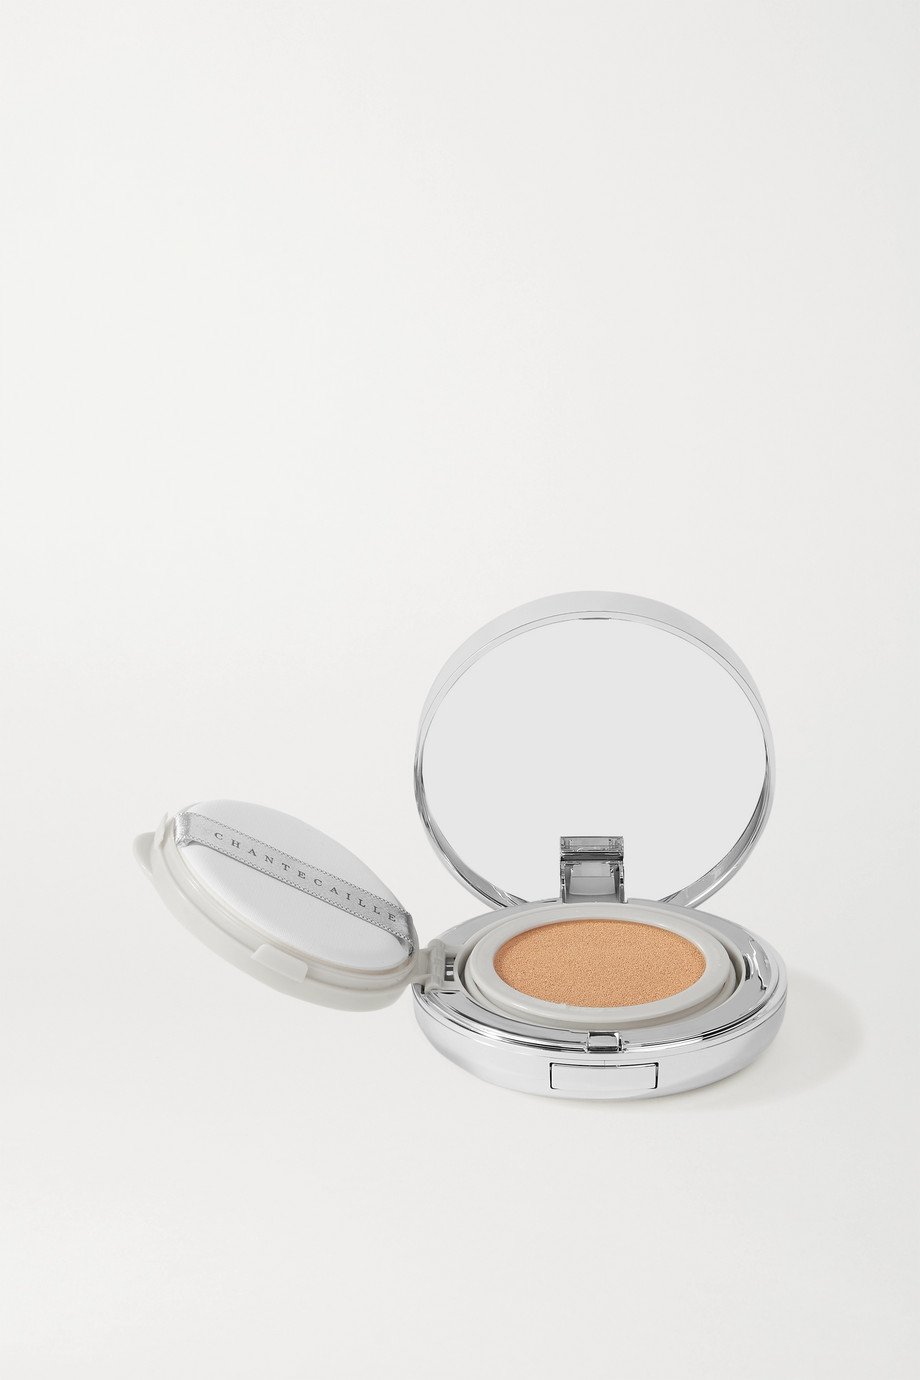 Chantecaille Future Skin Cushion Skincare Foundation - Alabaster